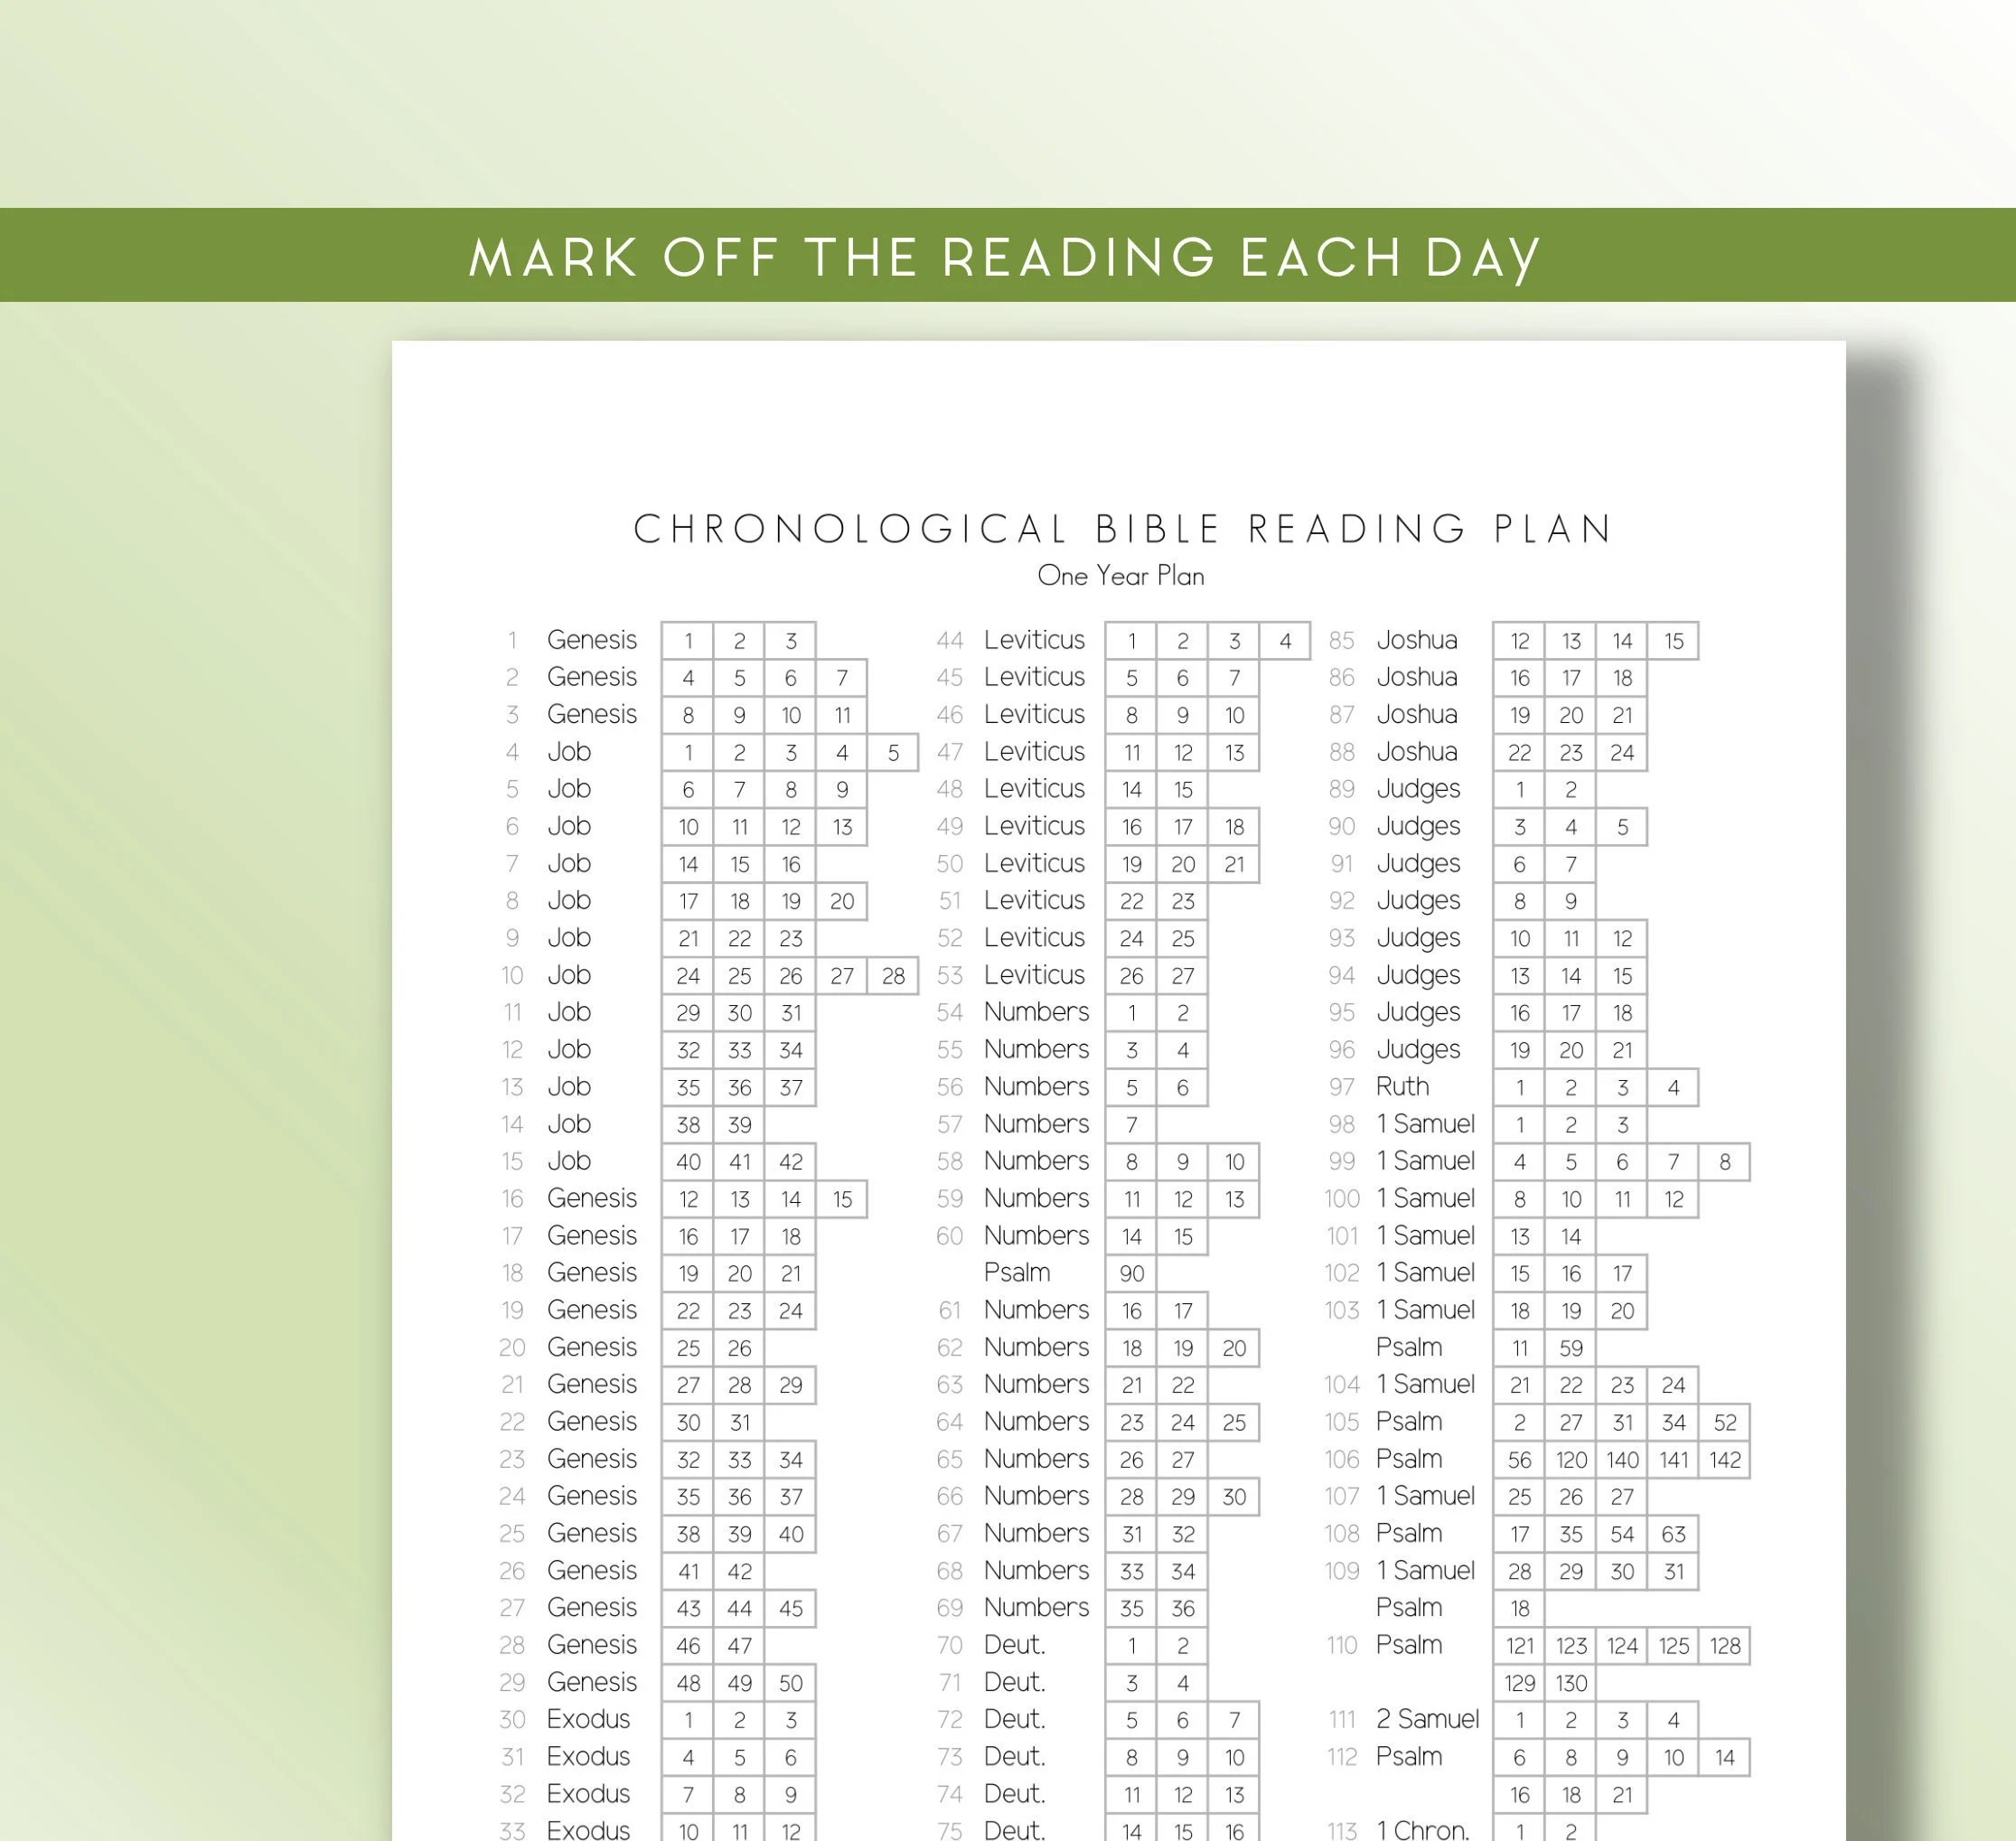 Chronological Bible Reading Plan Printable Daily Scripture Reading Plan 365 Reading Plan Christian Bible Planner A4 Letter Size